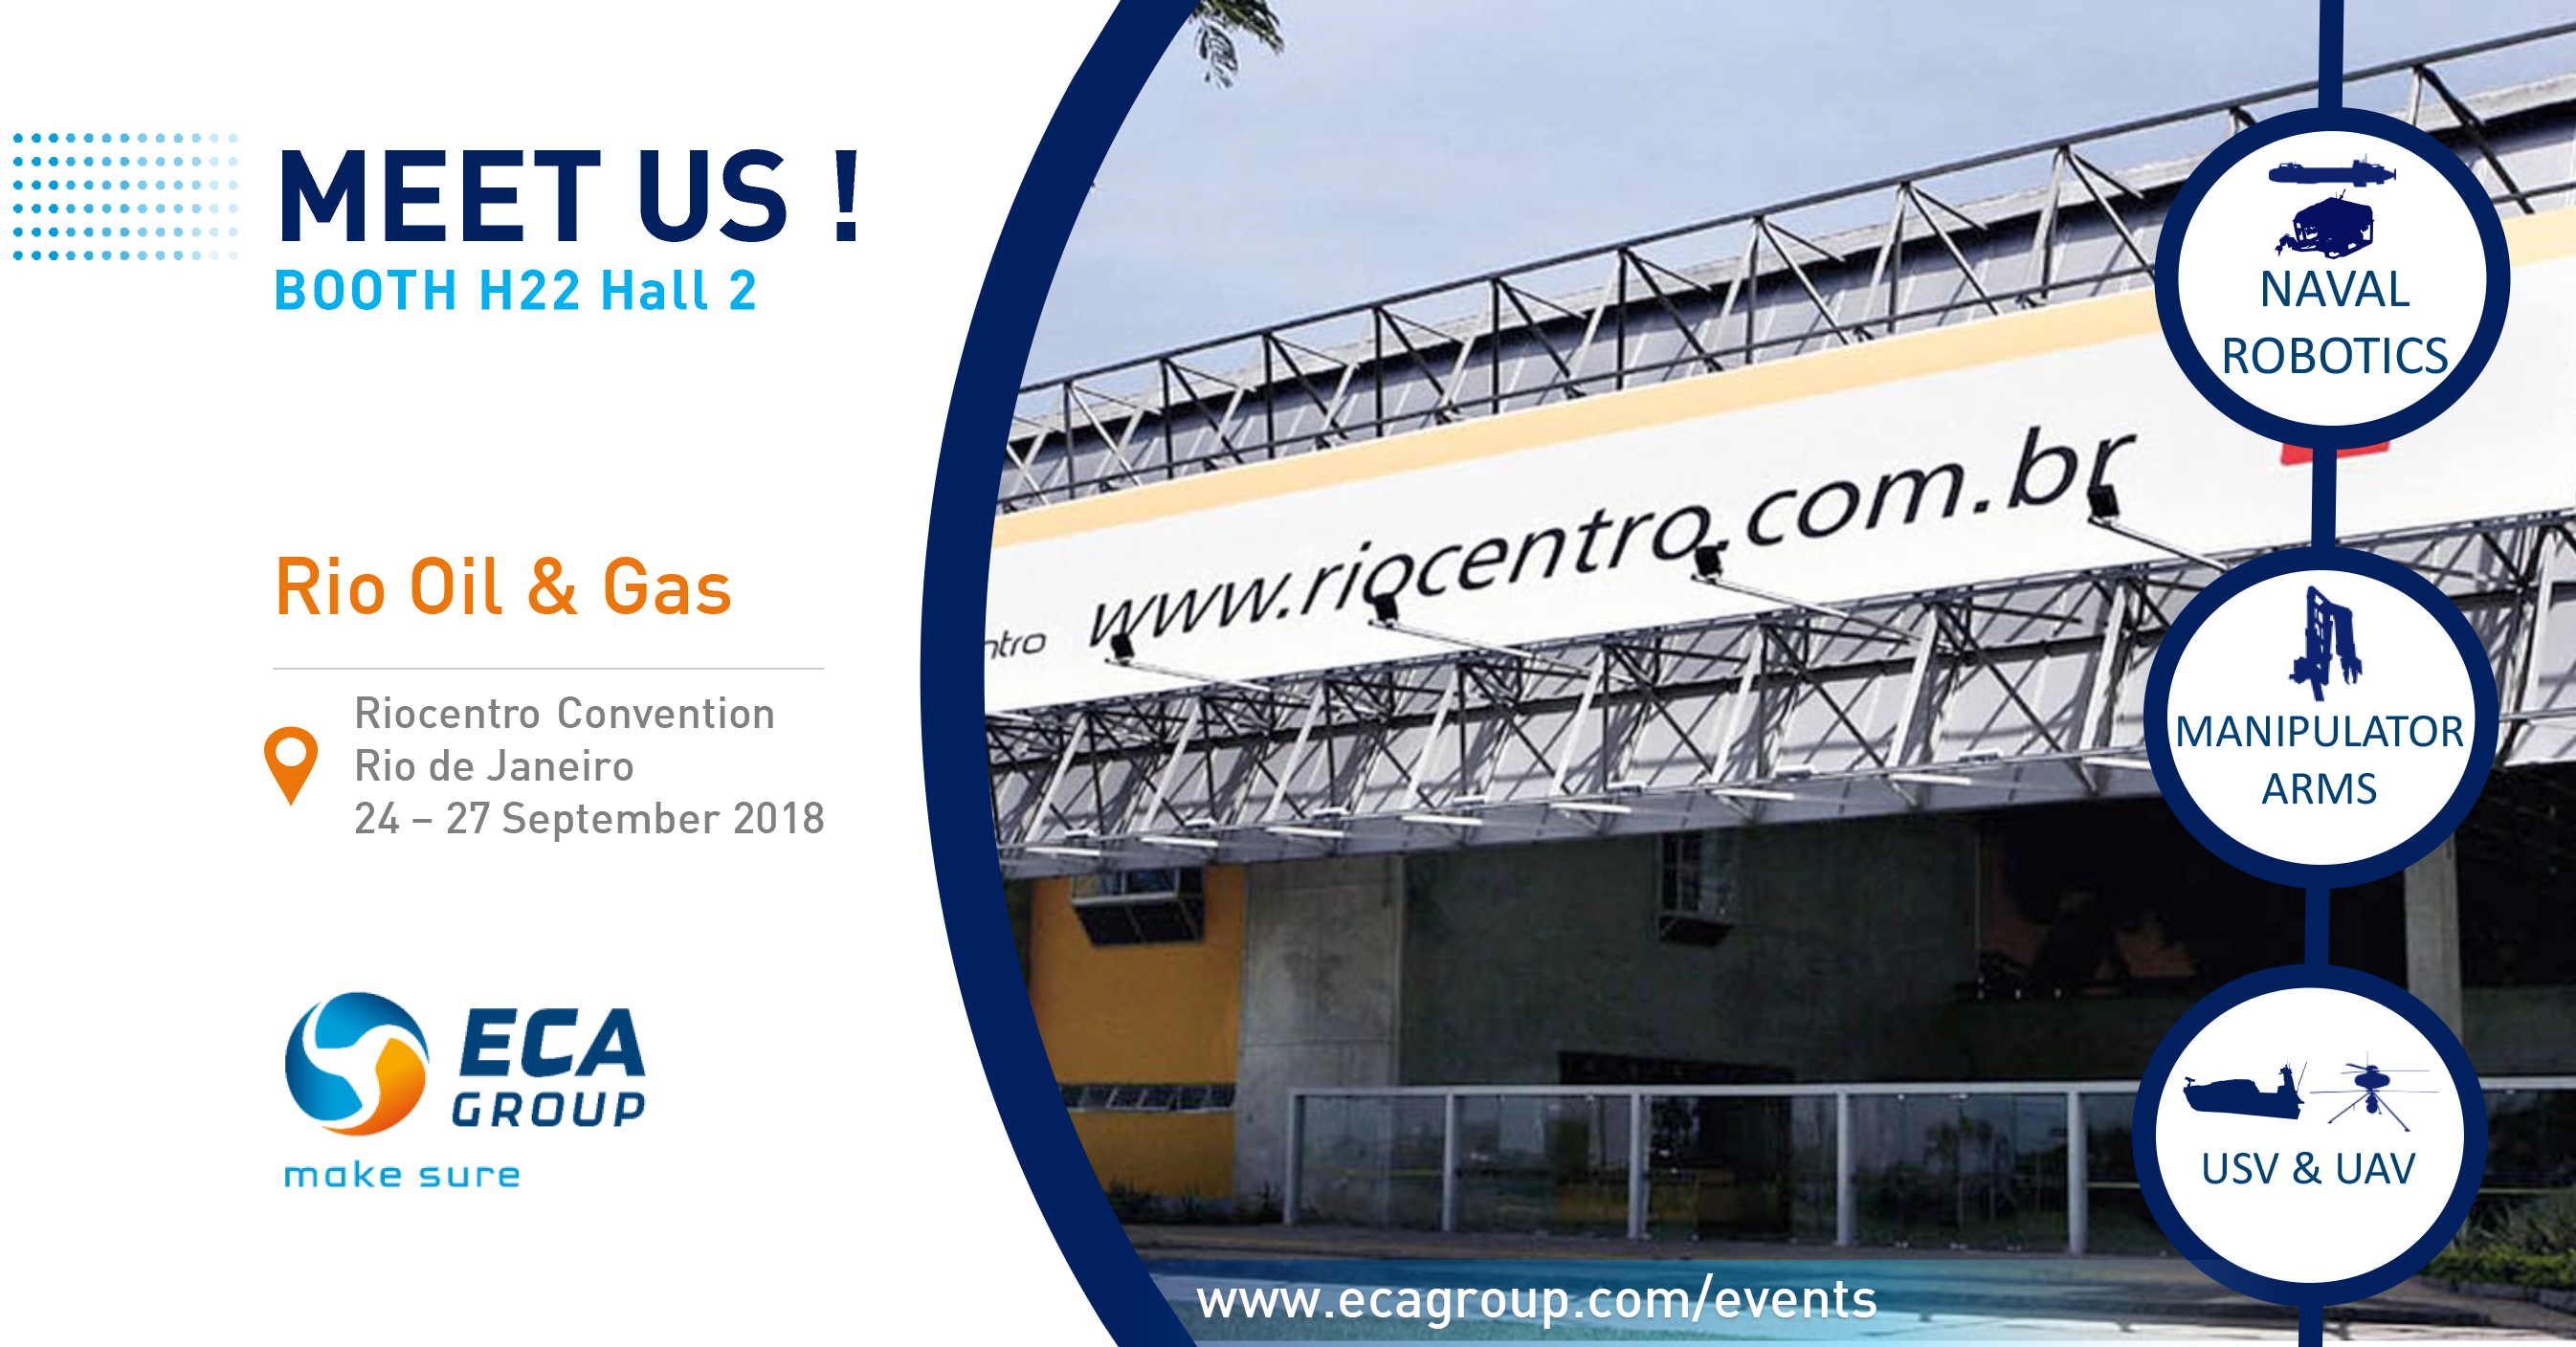 MEET ECA Group at RIO OIL AND GAS 2018